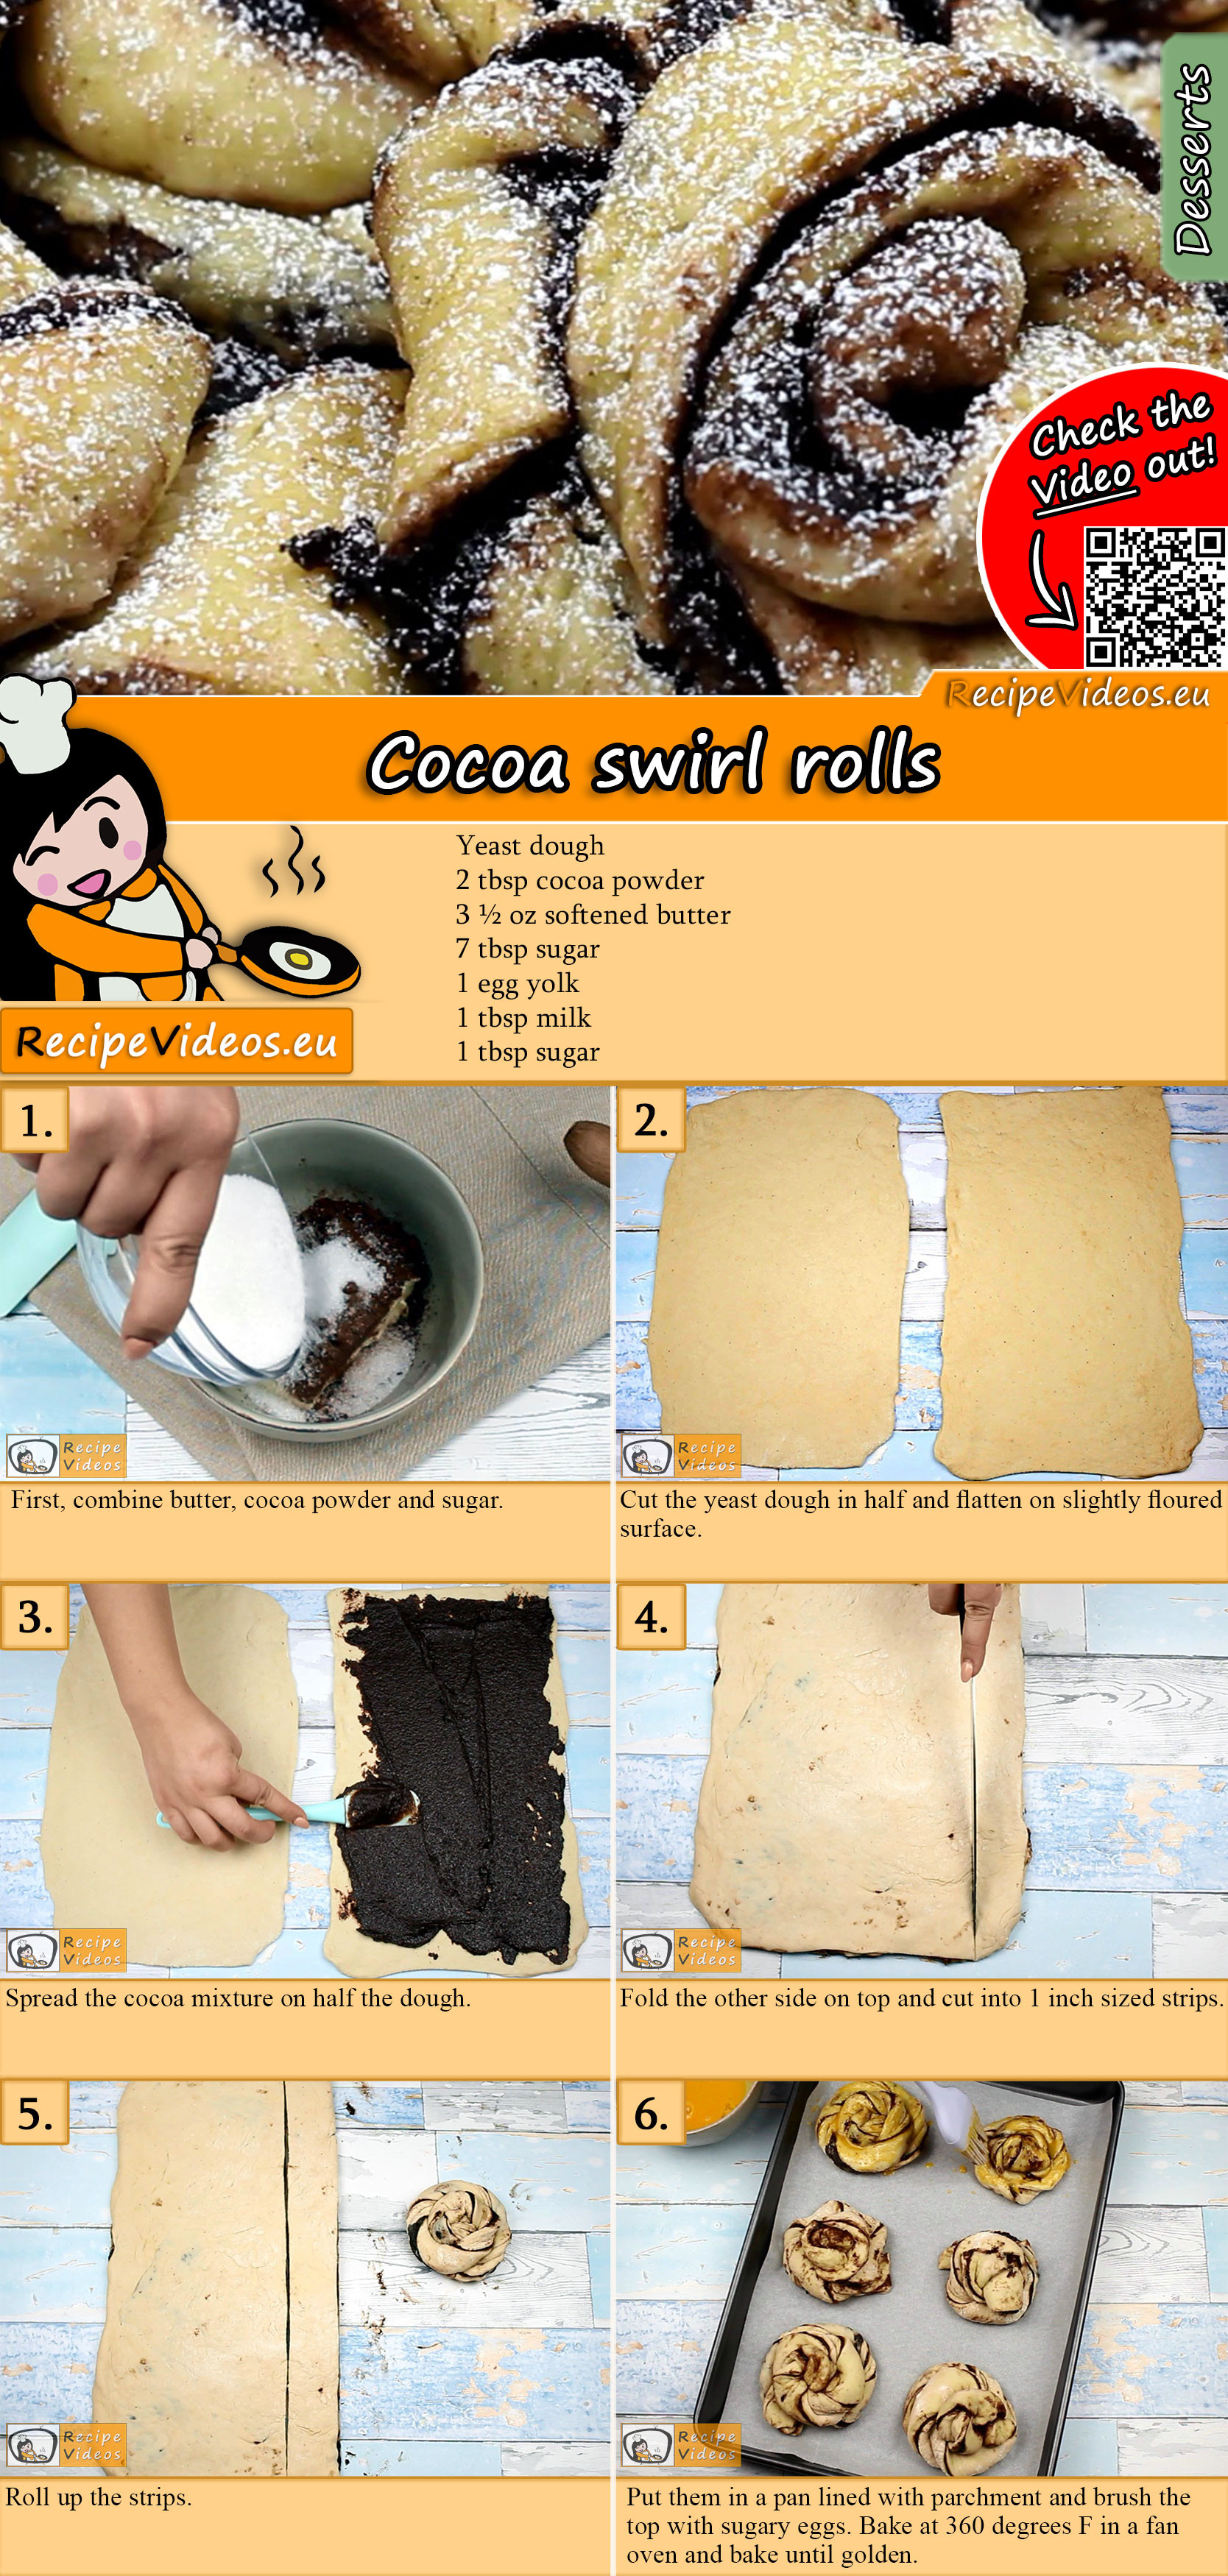 Cocoa swirl rolls recipe with video